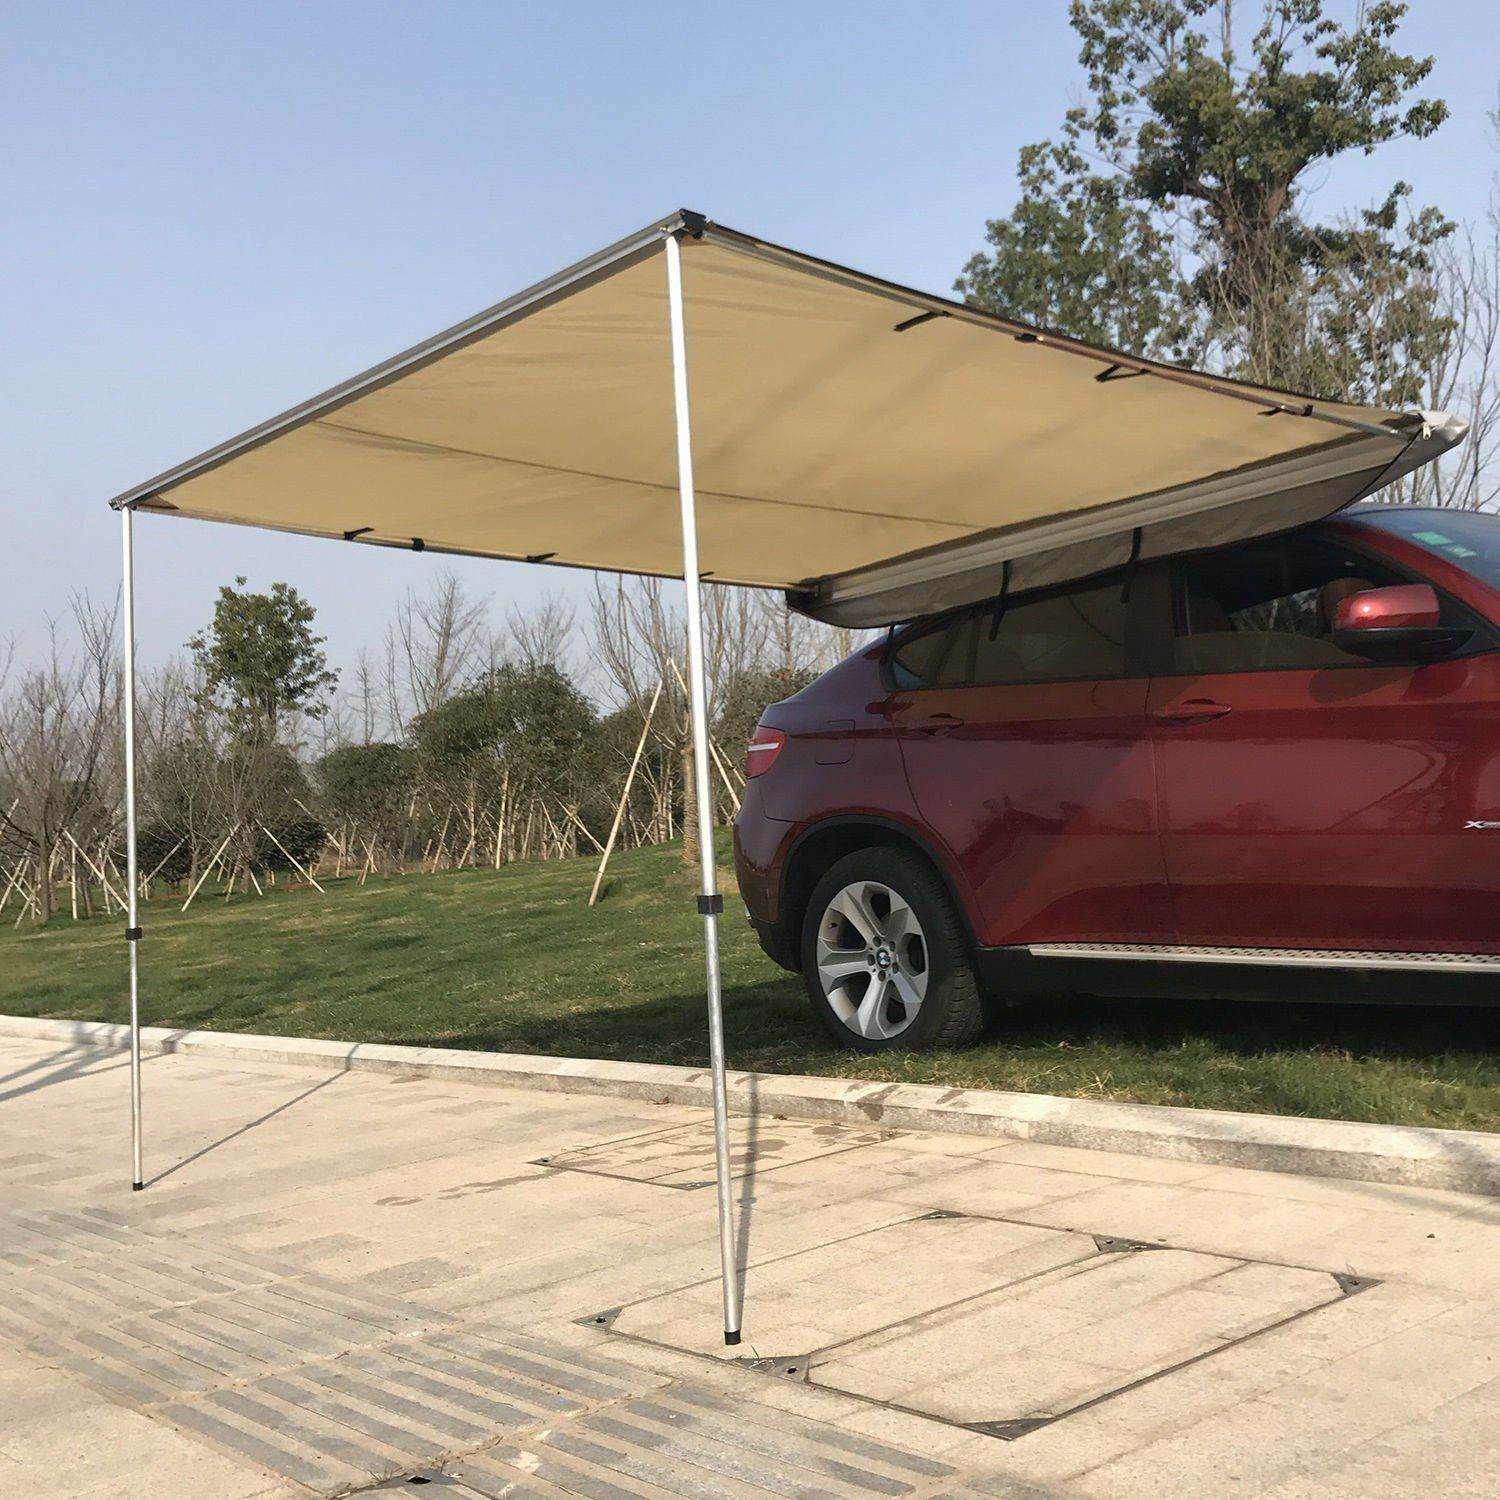 Outsunny Car Awning Portable Folding Retractable Rooftop Sun Shade Shelter Medium Car Awnings Tent Awning Sun Shade